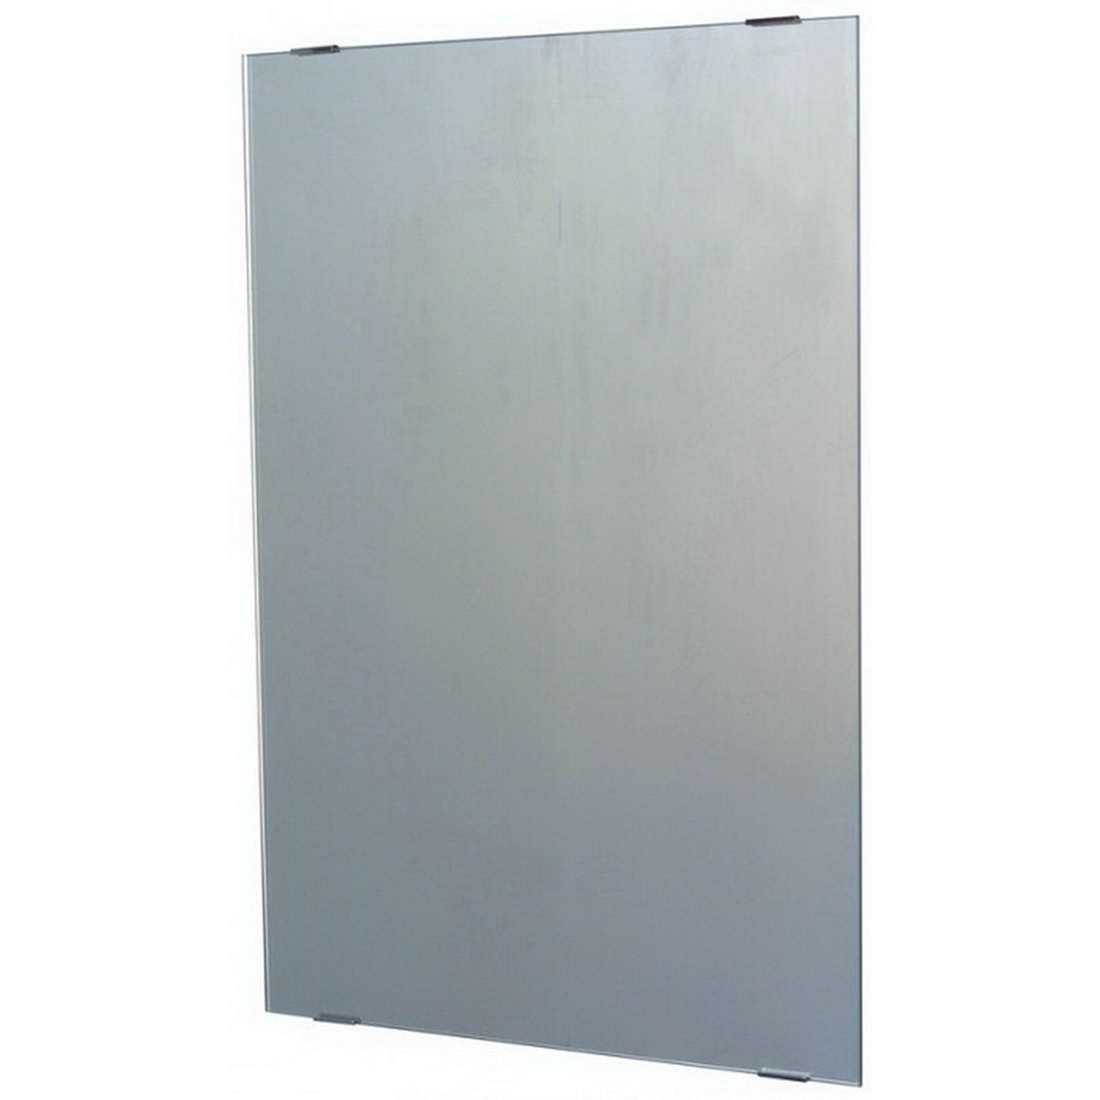 Mirrox Polished Edge Mirror with Clips 600 x 400mm 2416PEM